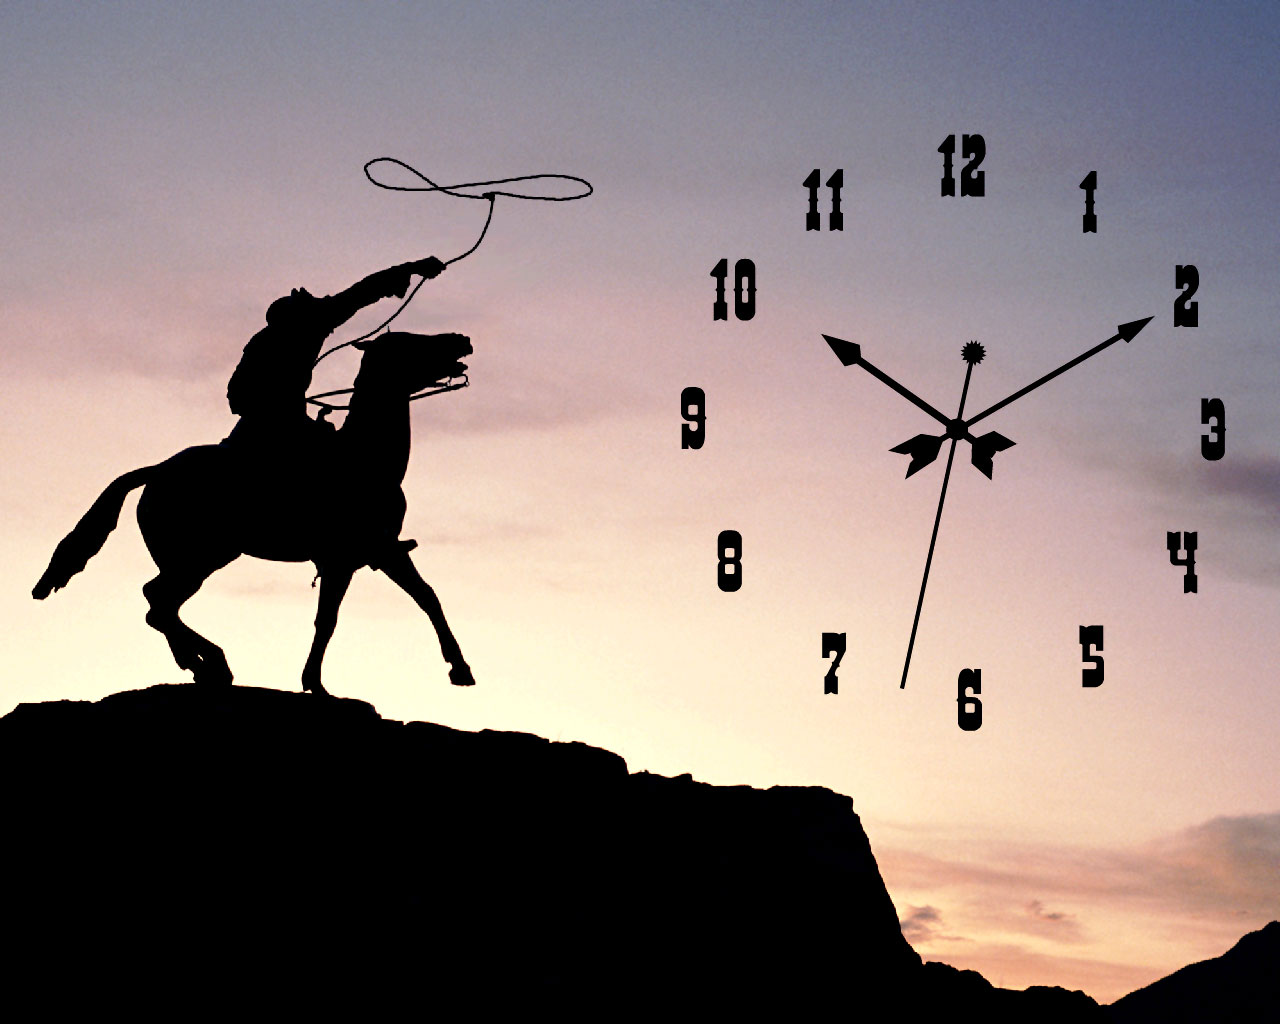 Cowboy PC Clock Screensaver: feel the spirit of unlimited freedom!